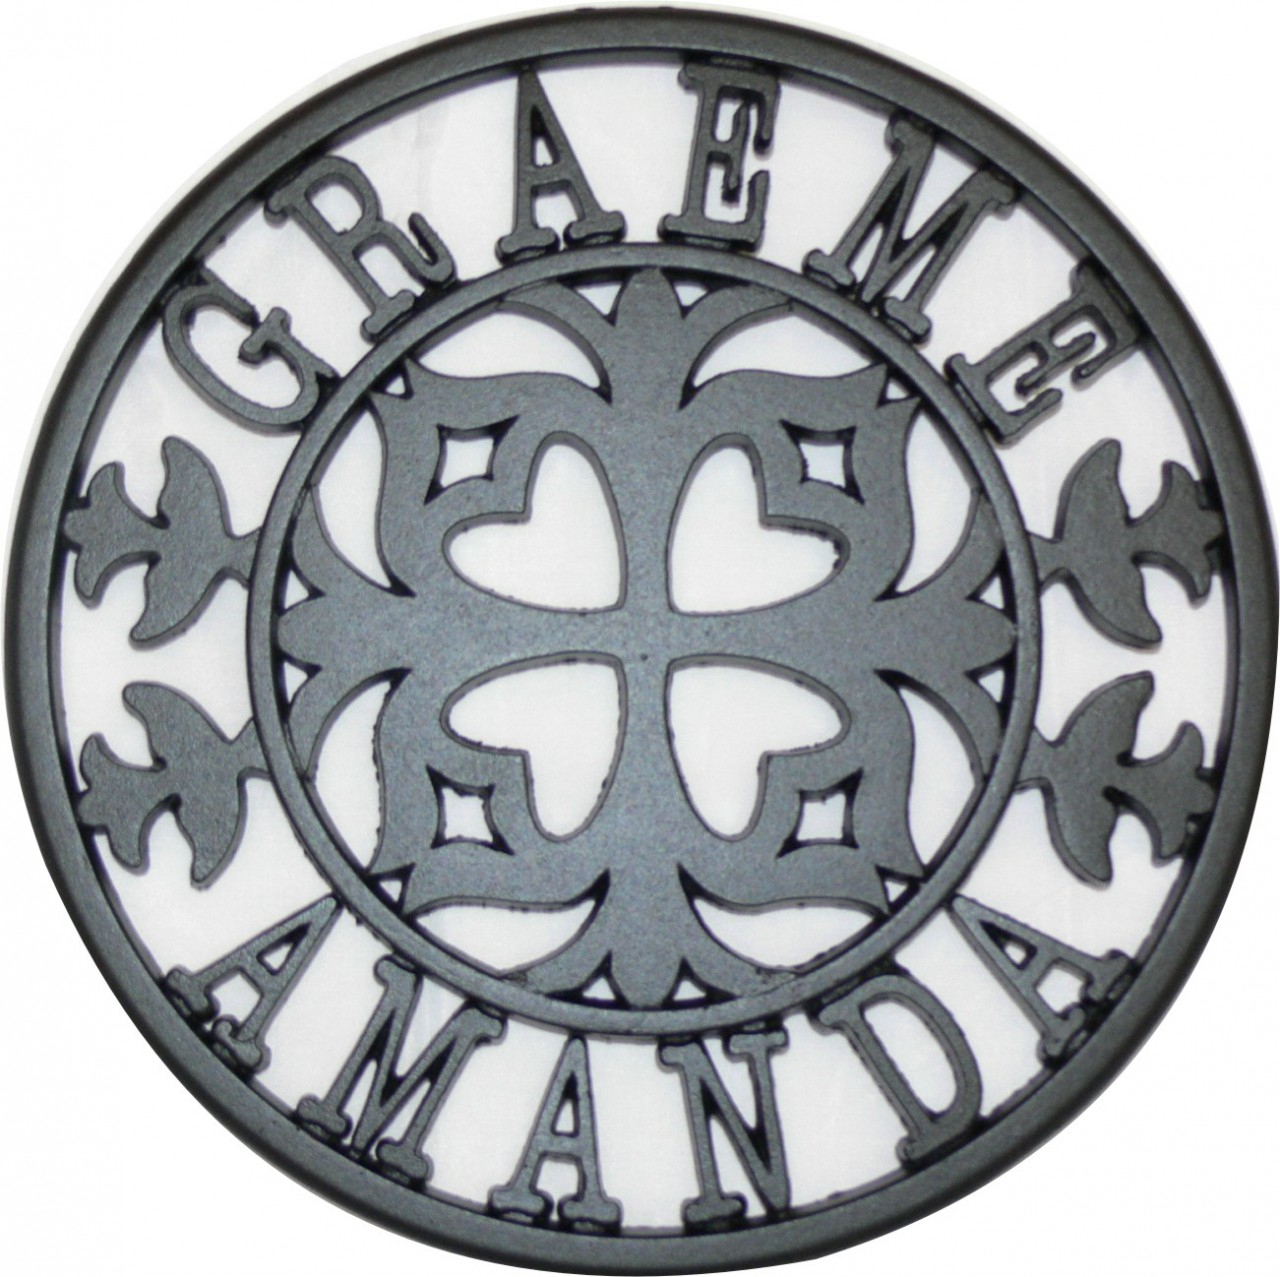 Personalised Cast Iron Trivets Lumley Designs